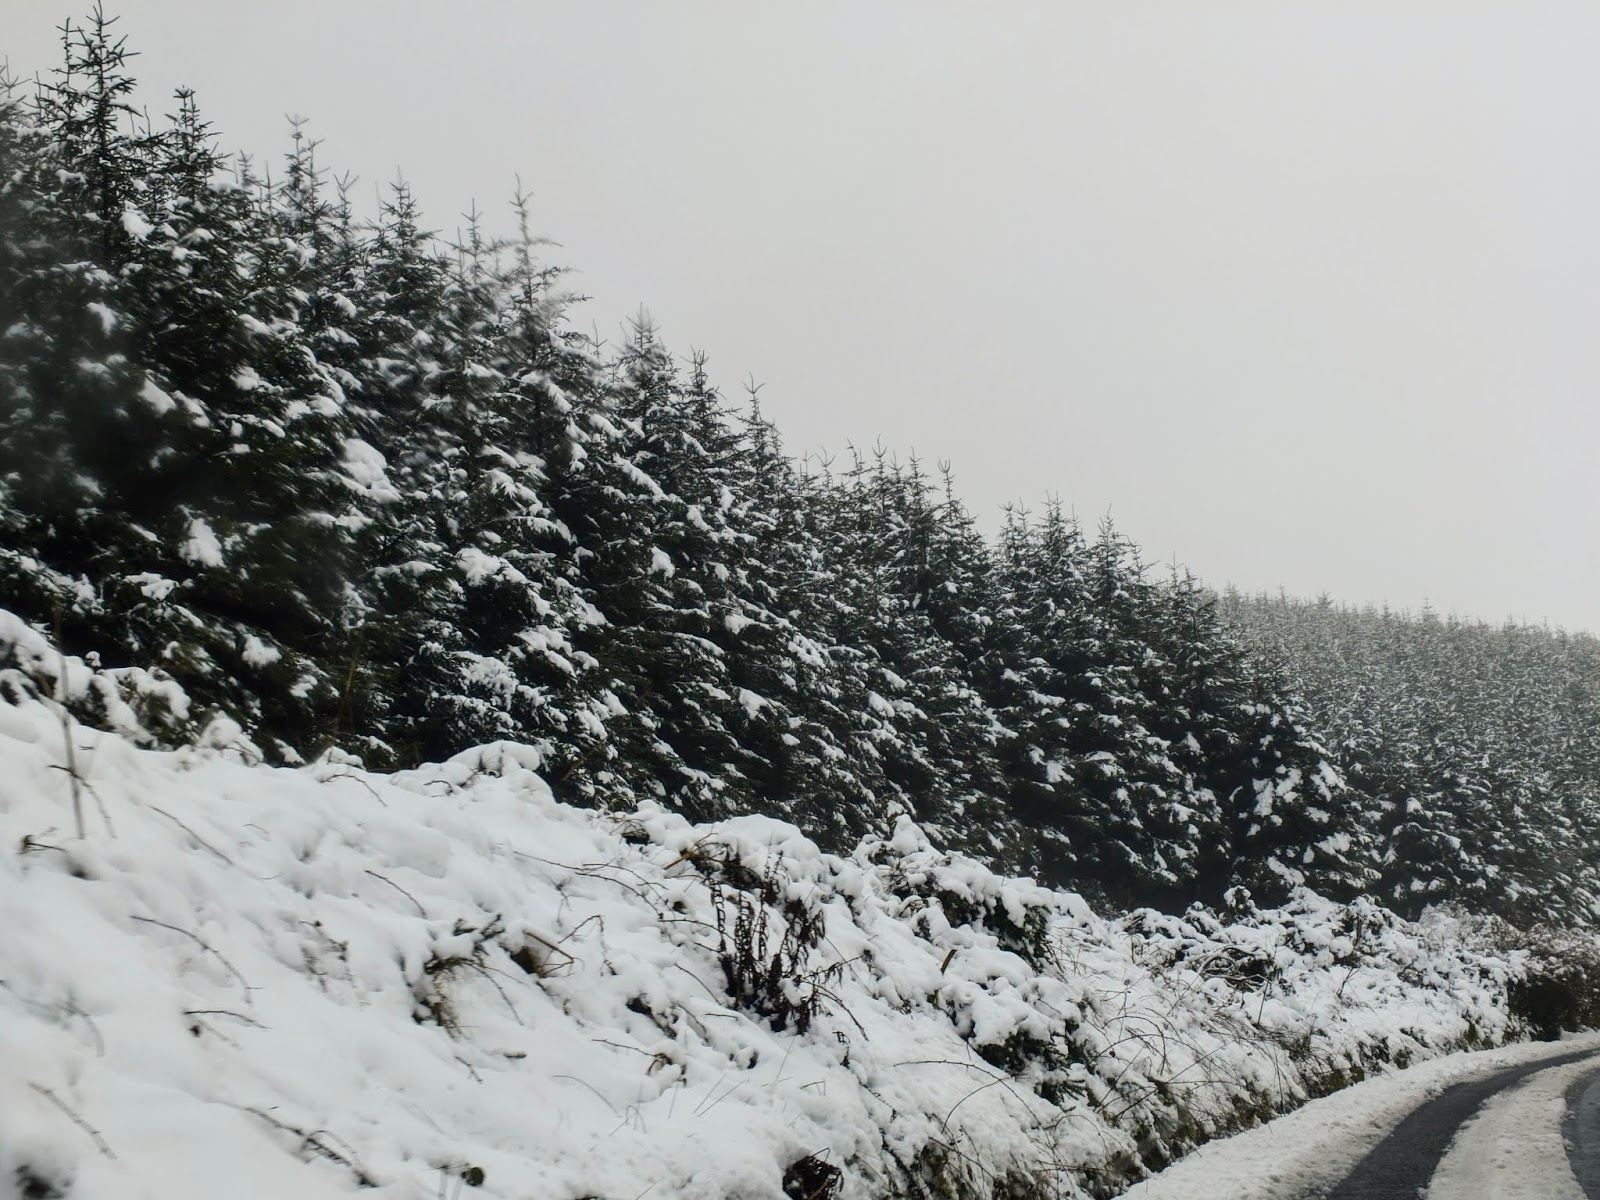 Snowy conifers on the side of the road in Duhallow.